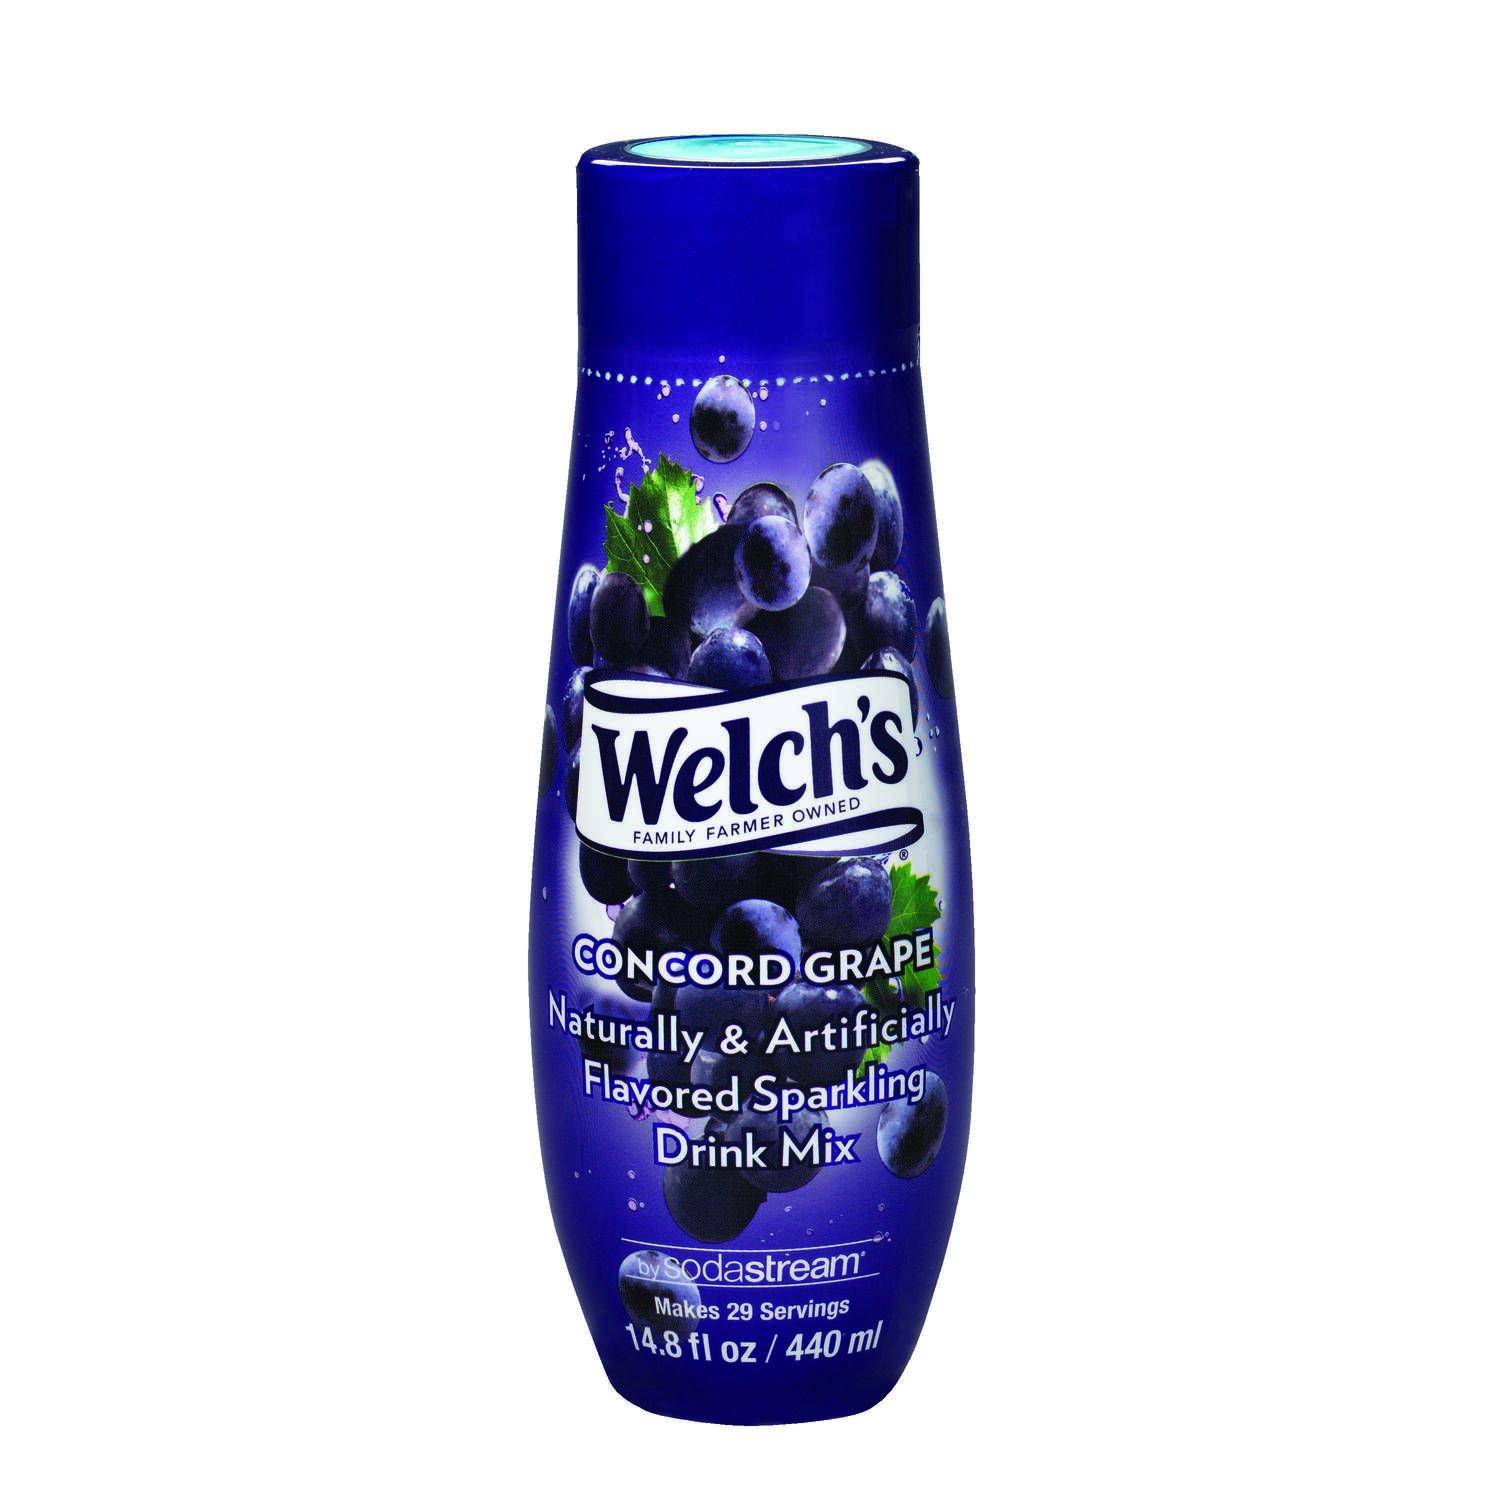 Sodastream  Welchs  Concord Grape  Soda Mix  14.8 oz. 1 pk